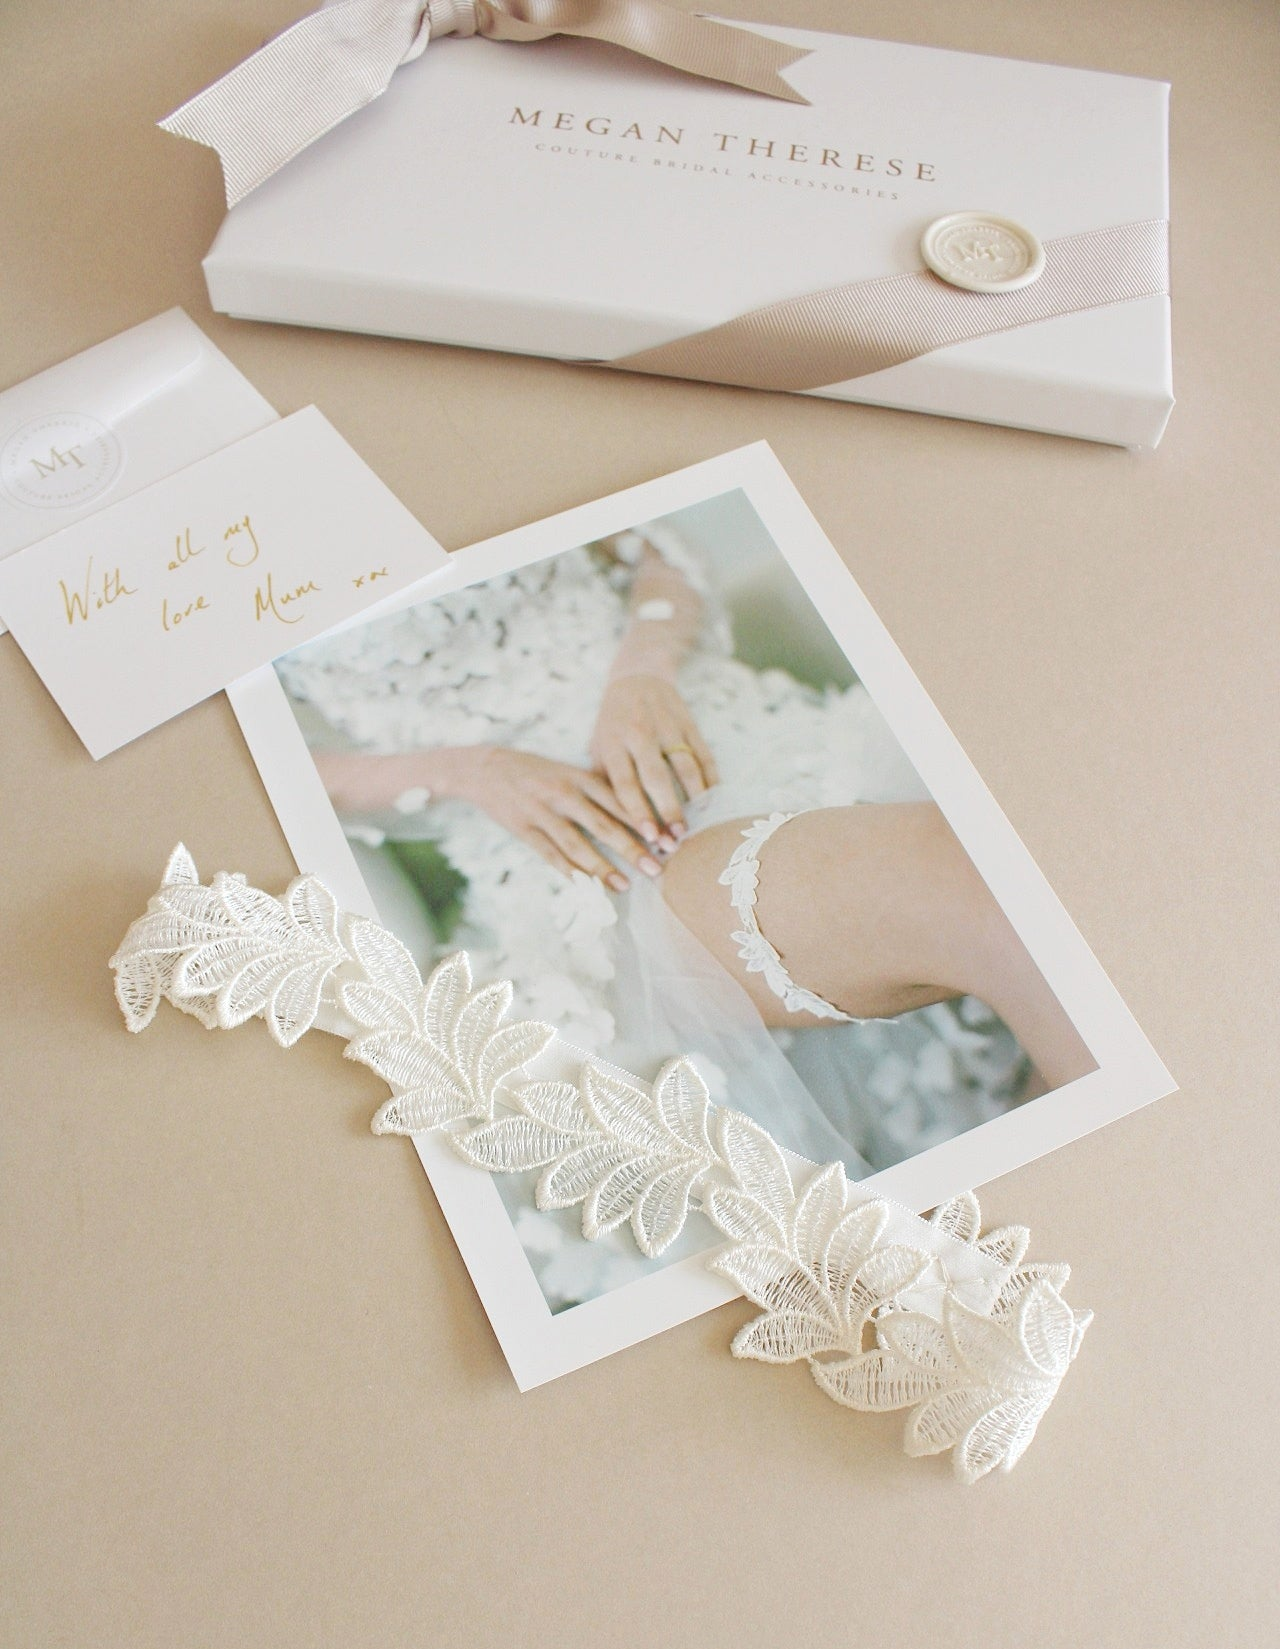 sleek lace leaf wedding garter gift set for bride